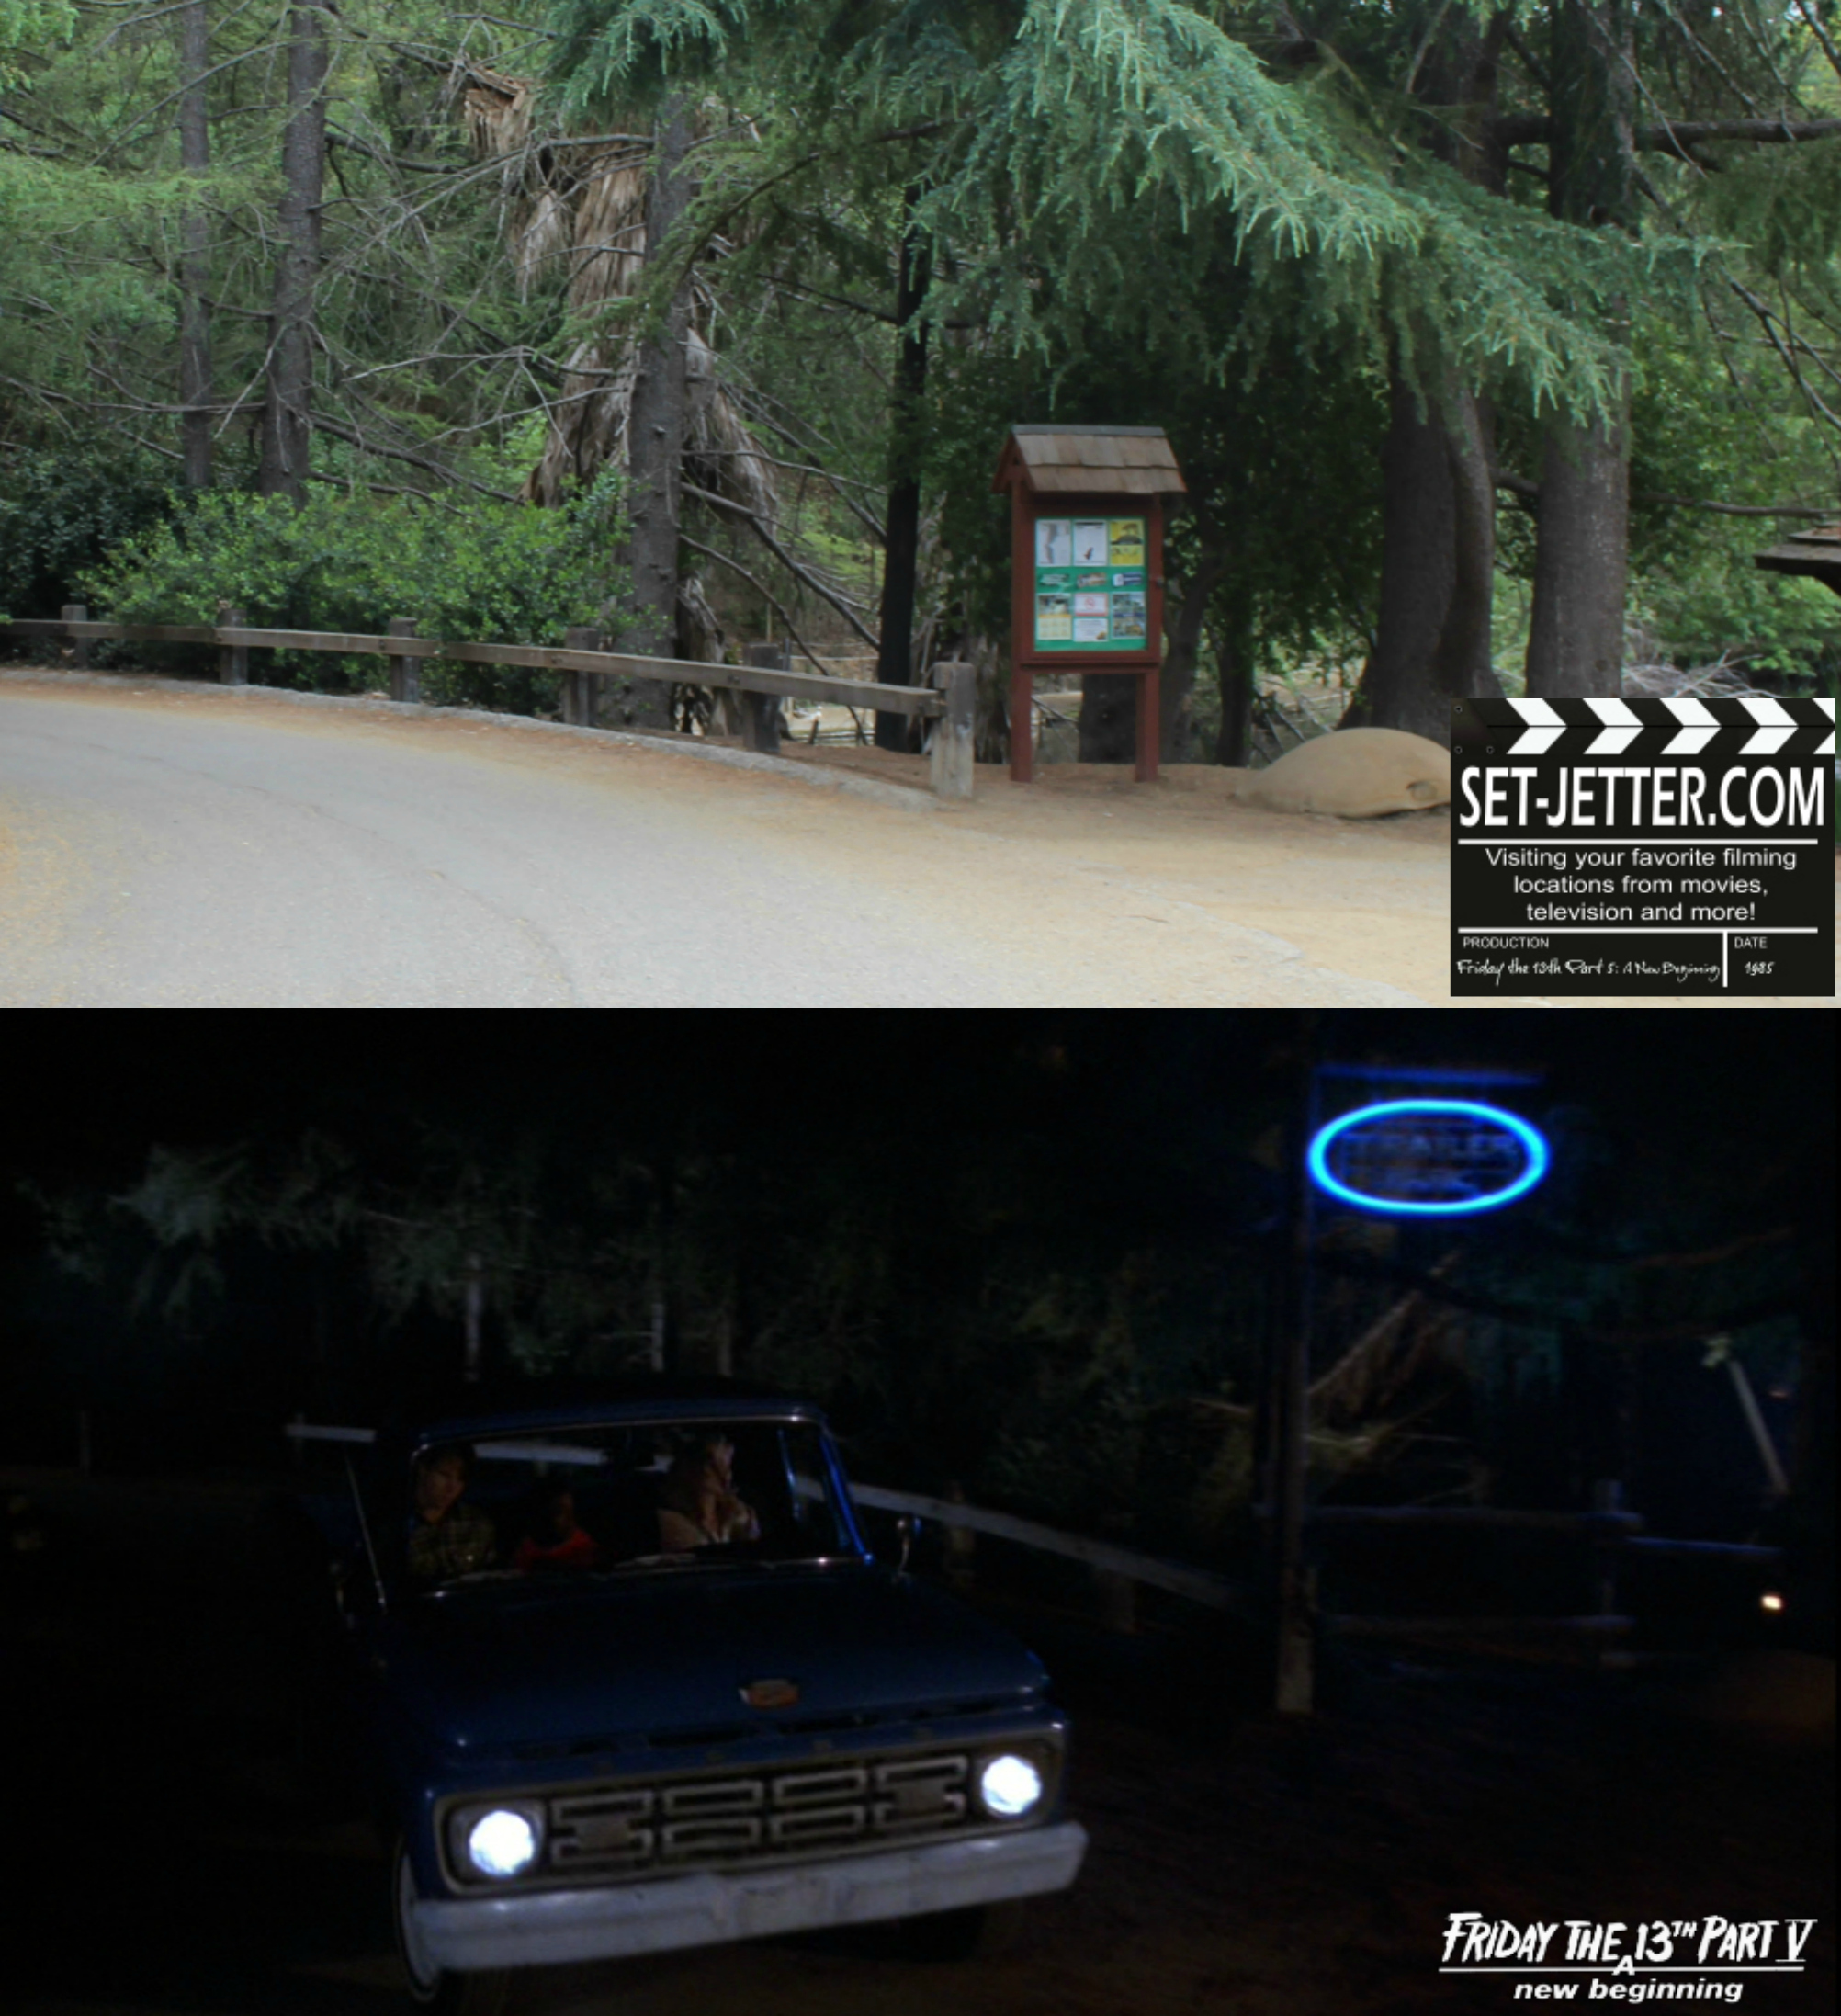 Friday the 13th Part V comparison 33.jpg